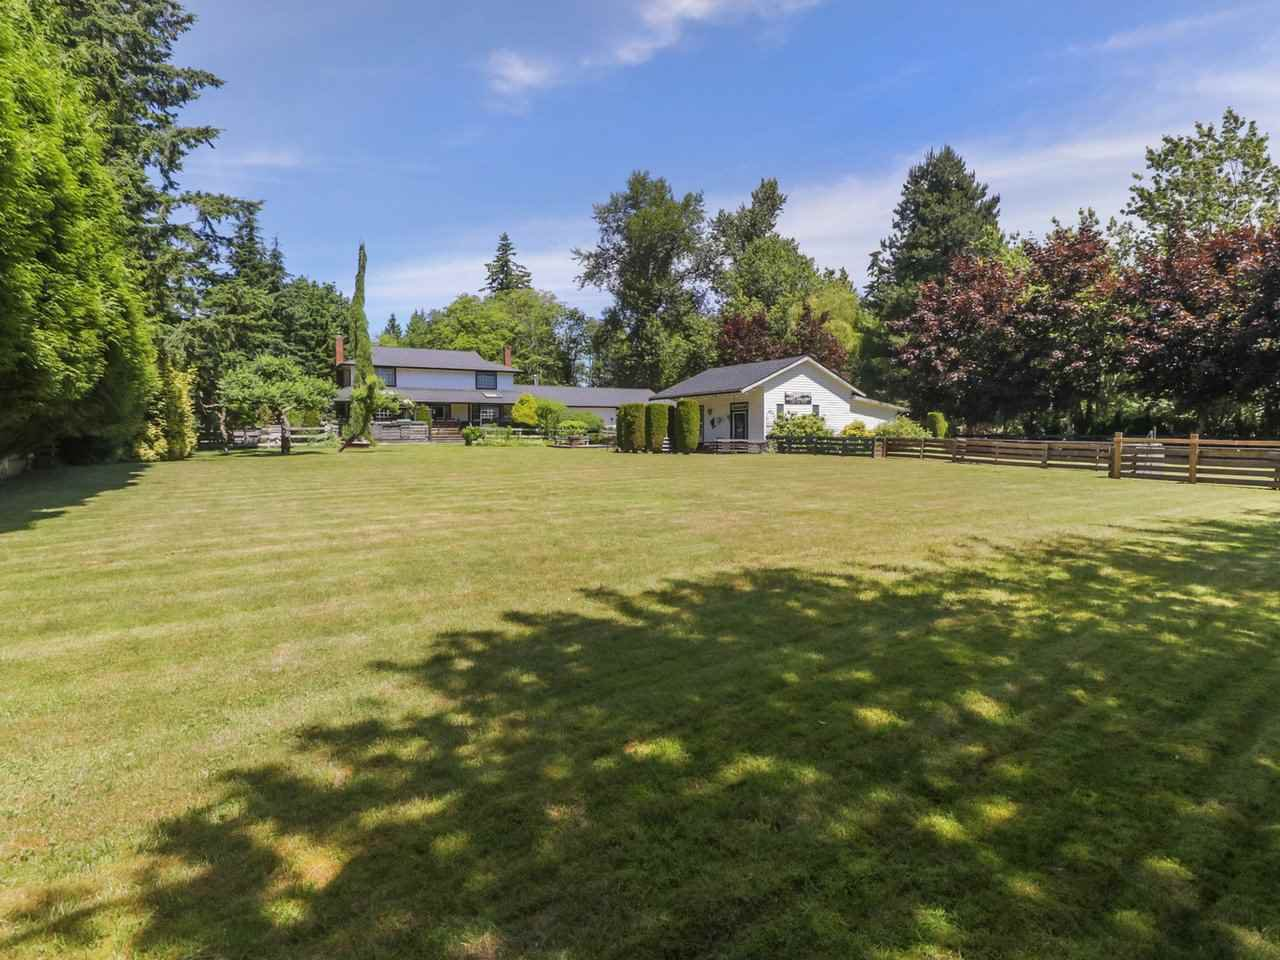 Photo 2: Photos: 13957 32 Avenue in Surrey: Elgin Chantrell House for sale (South Surrey White Rock)  : MLS®# R2466206